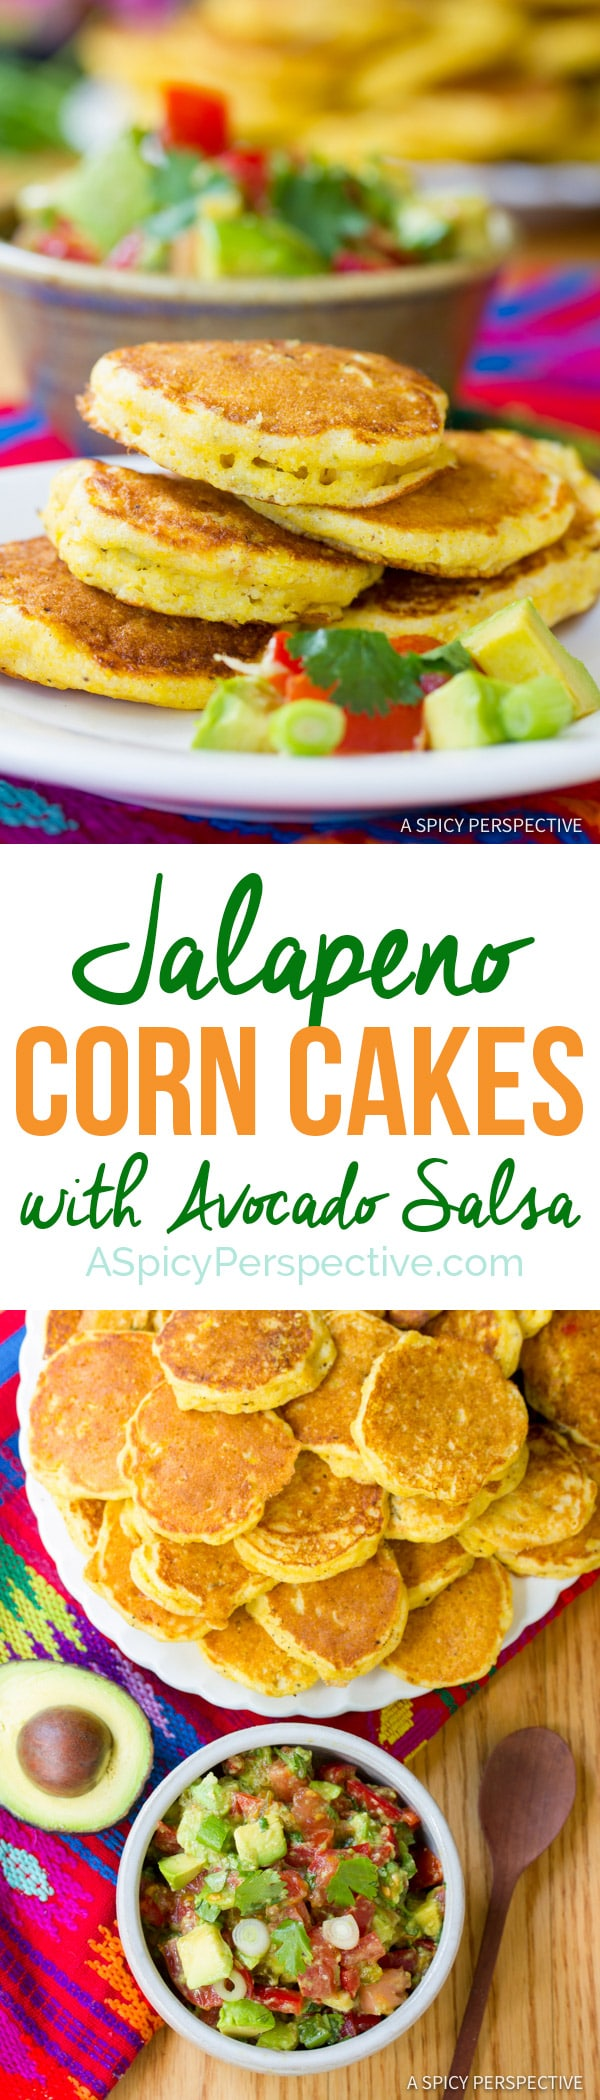 Zesty Jalapeno Corn Cakes with Avocado Salsa | ASpicyPerspective.com